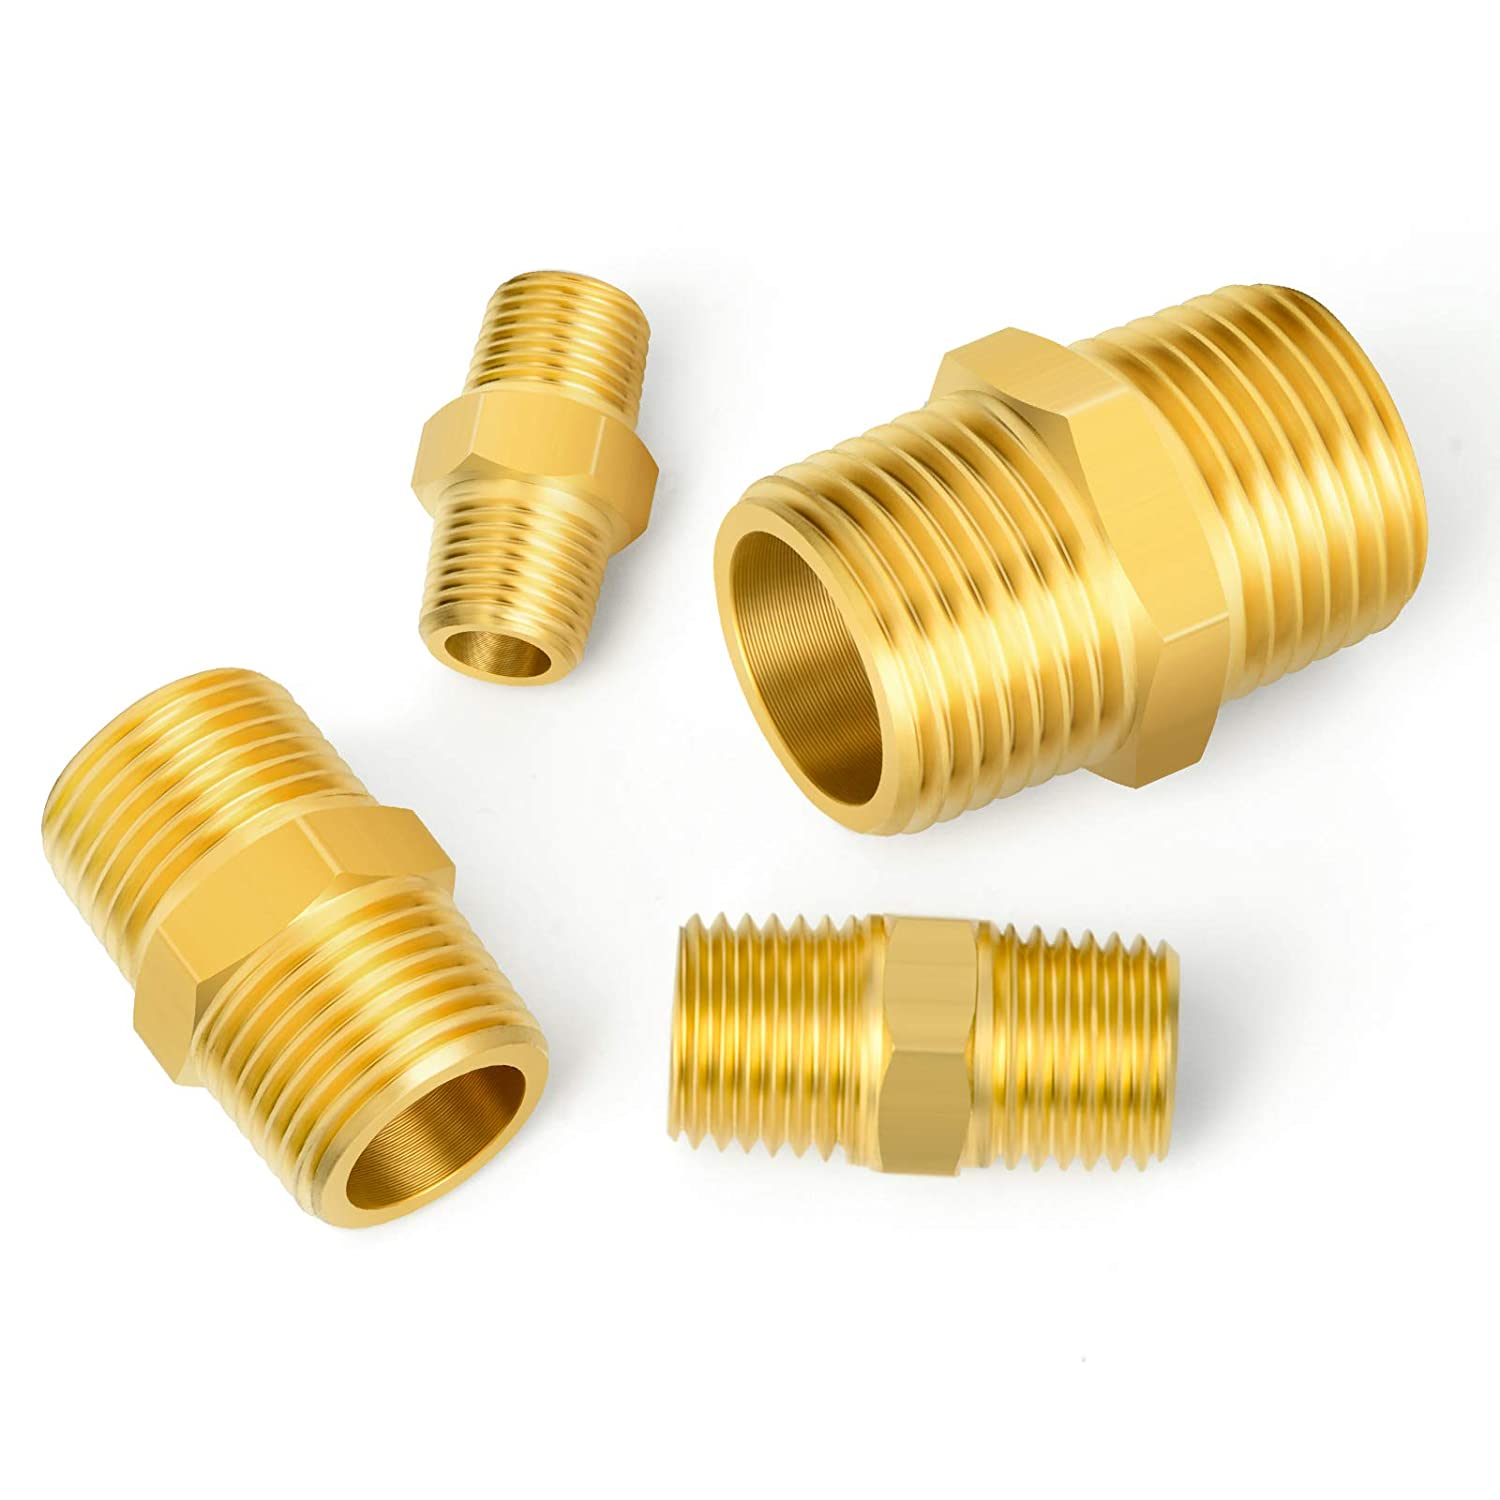 Gasher 8PCS Brass Pipe Fitting Hex Coupling Kit 1//8 inch 1//4 inch 3//8 inch 1//2 inch